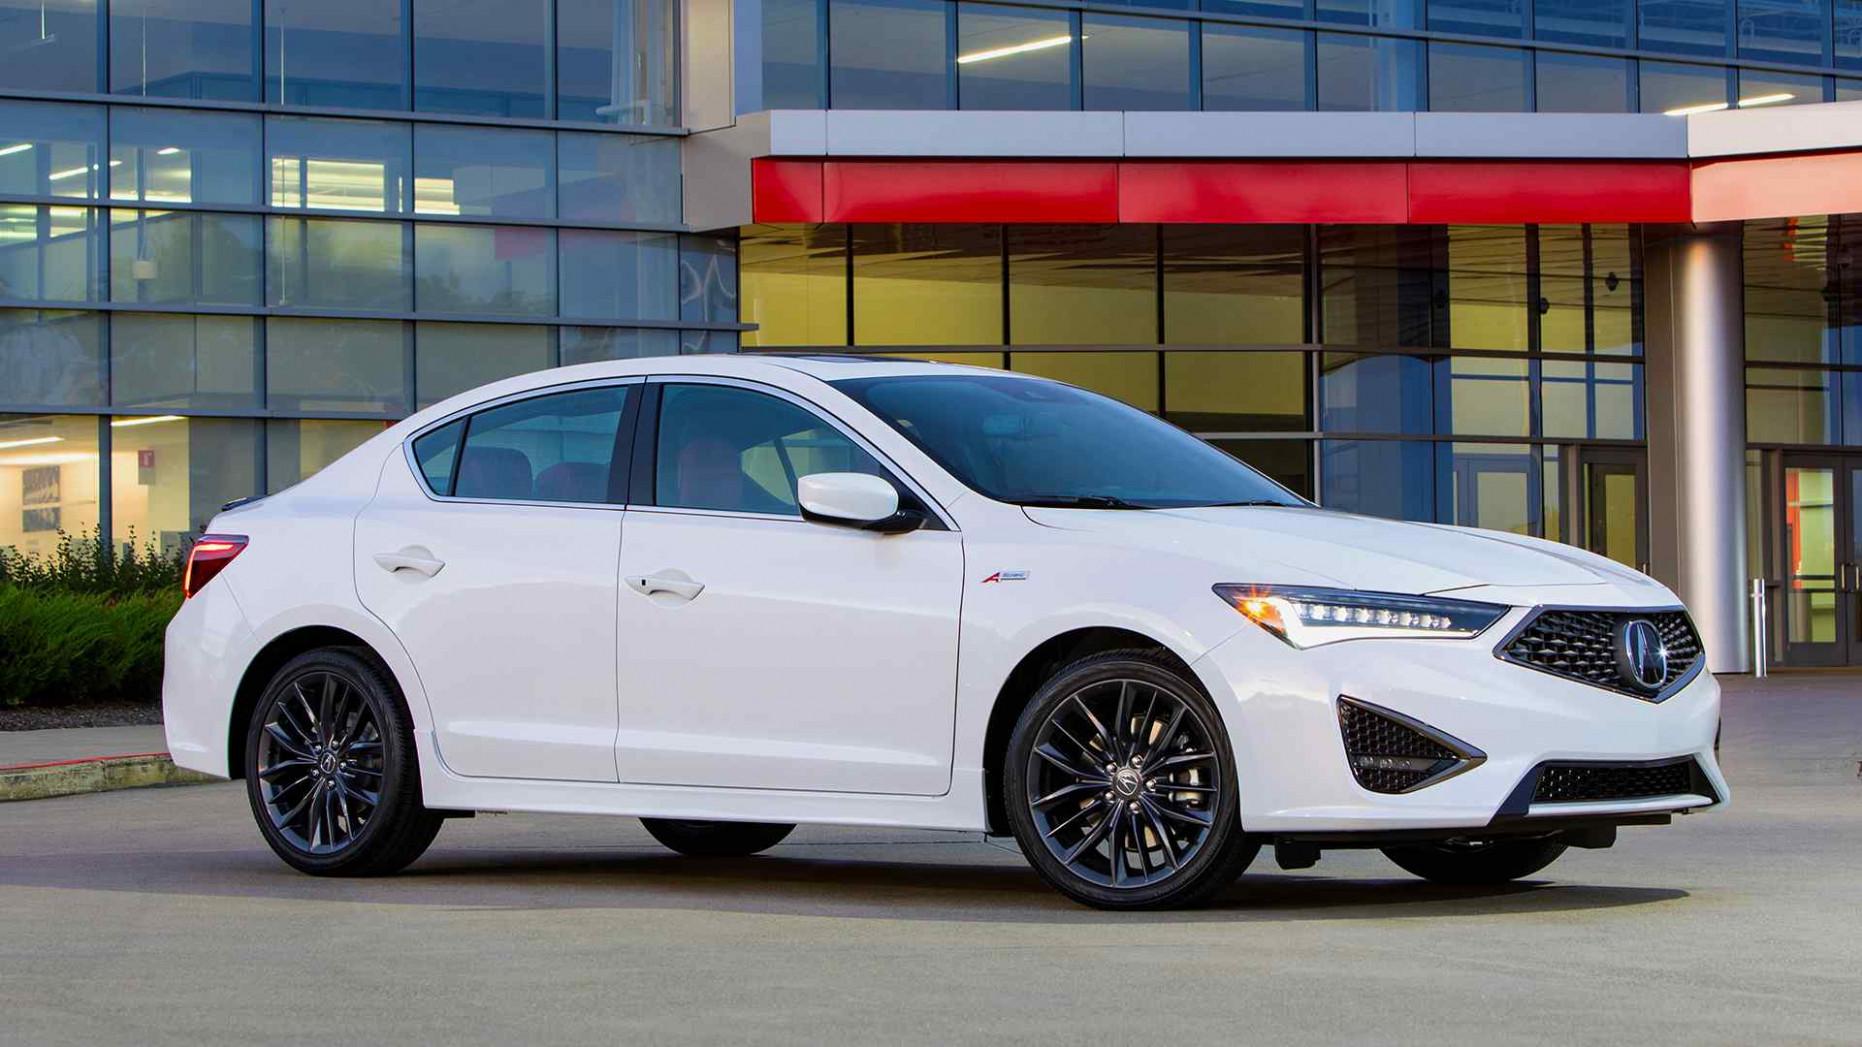 9 Acura ILX A-Spec First Drive: Finally, A Contender - 2020 acura ilx a spec